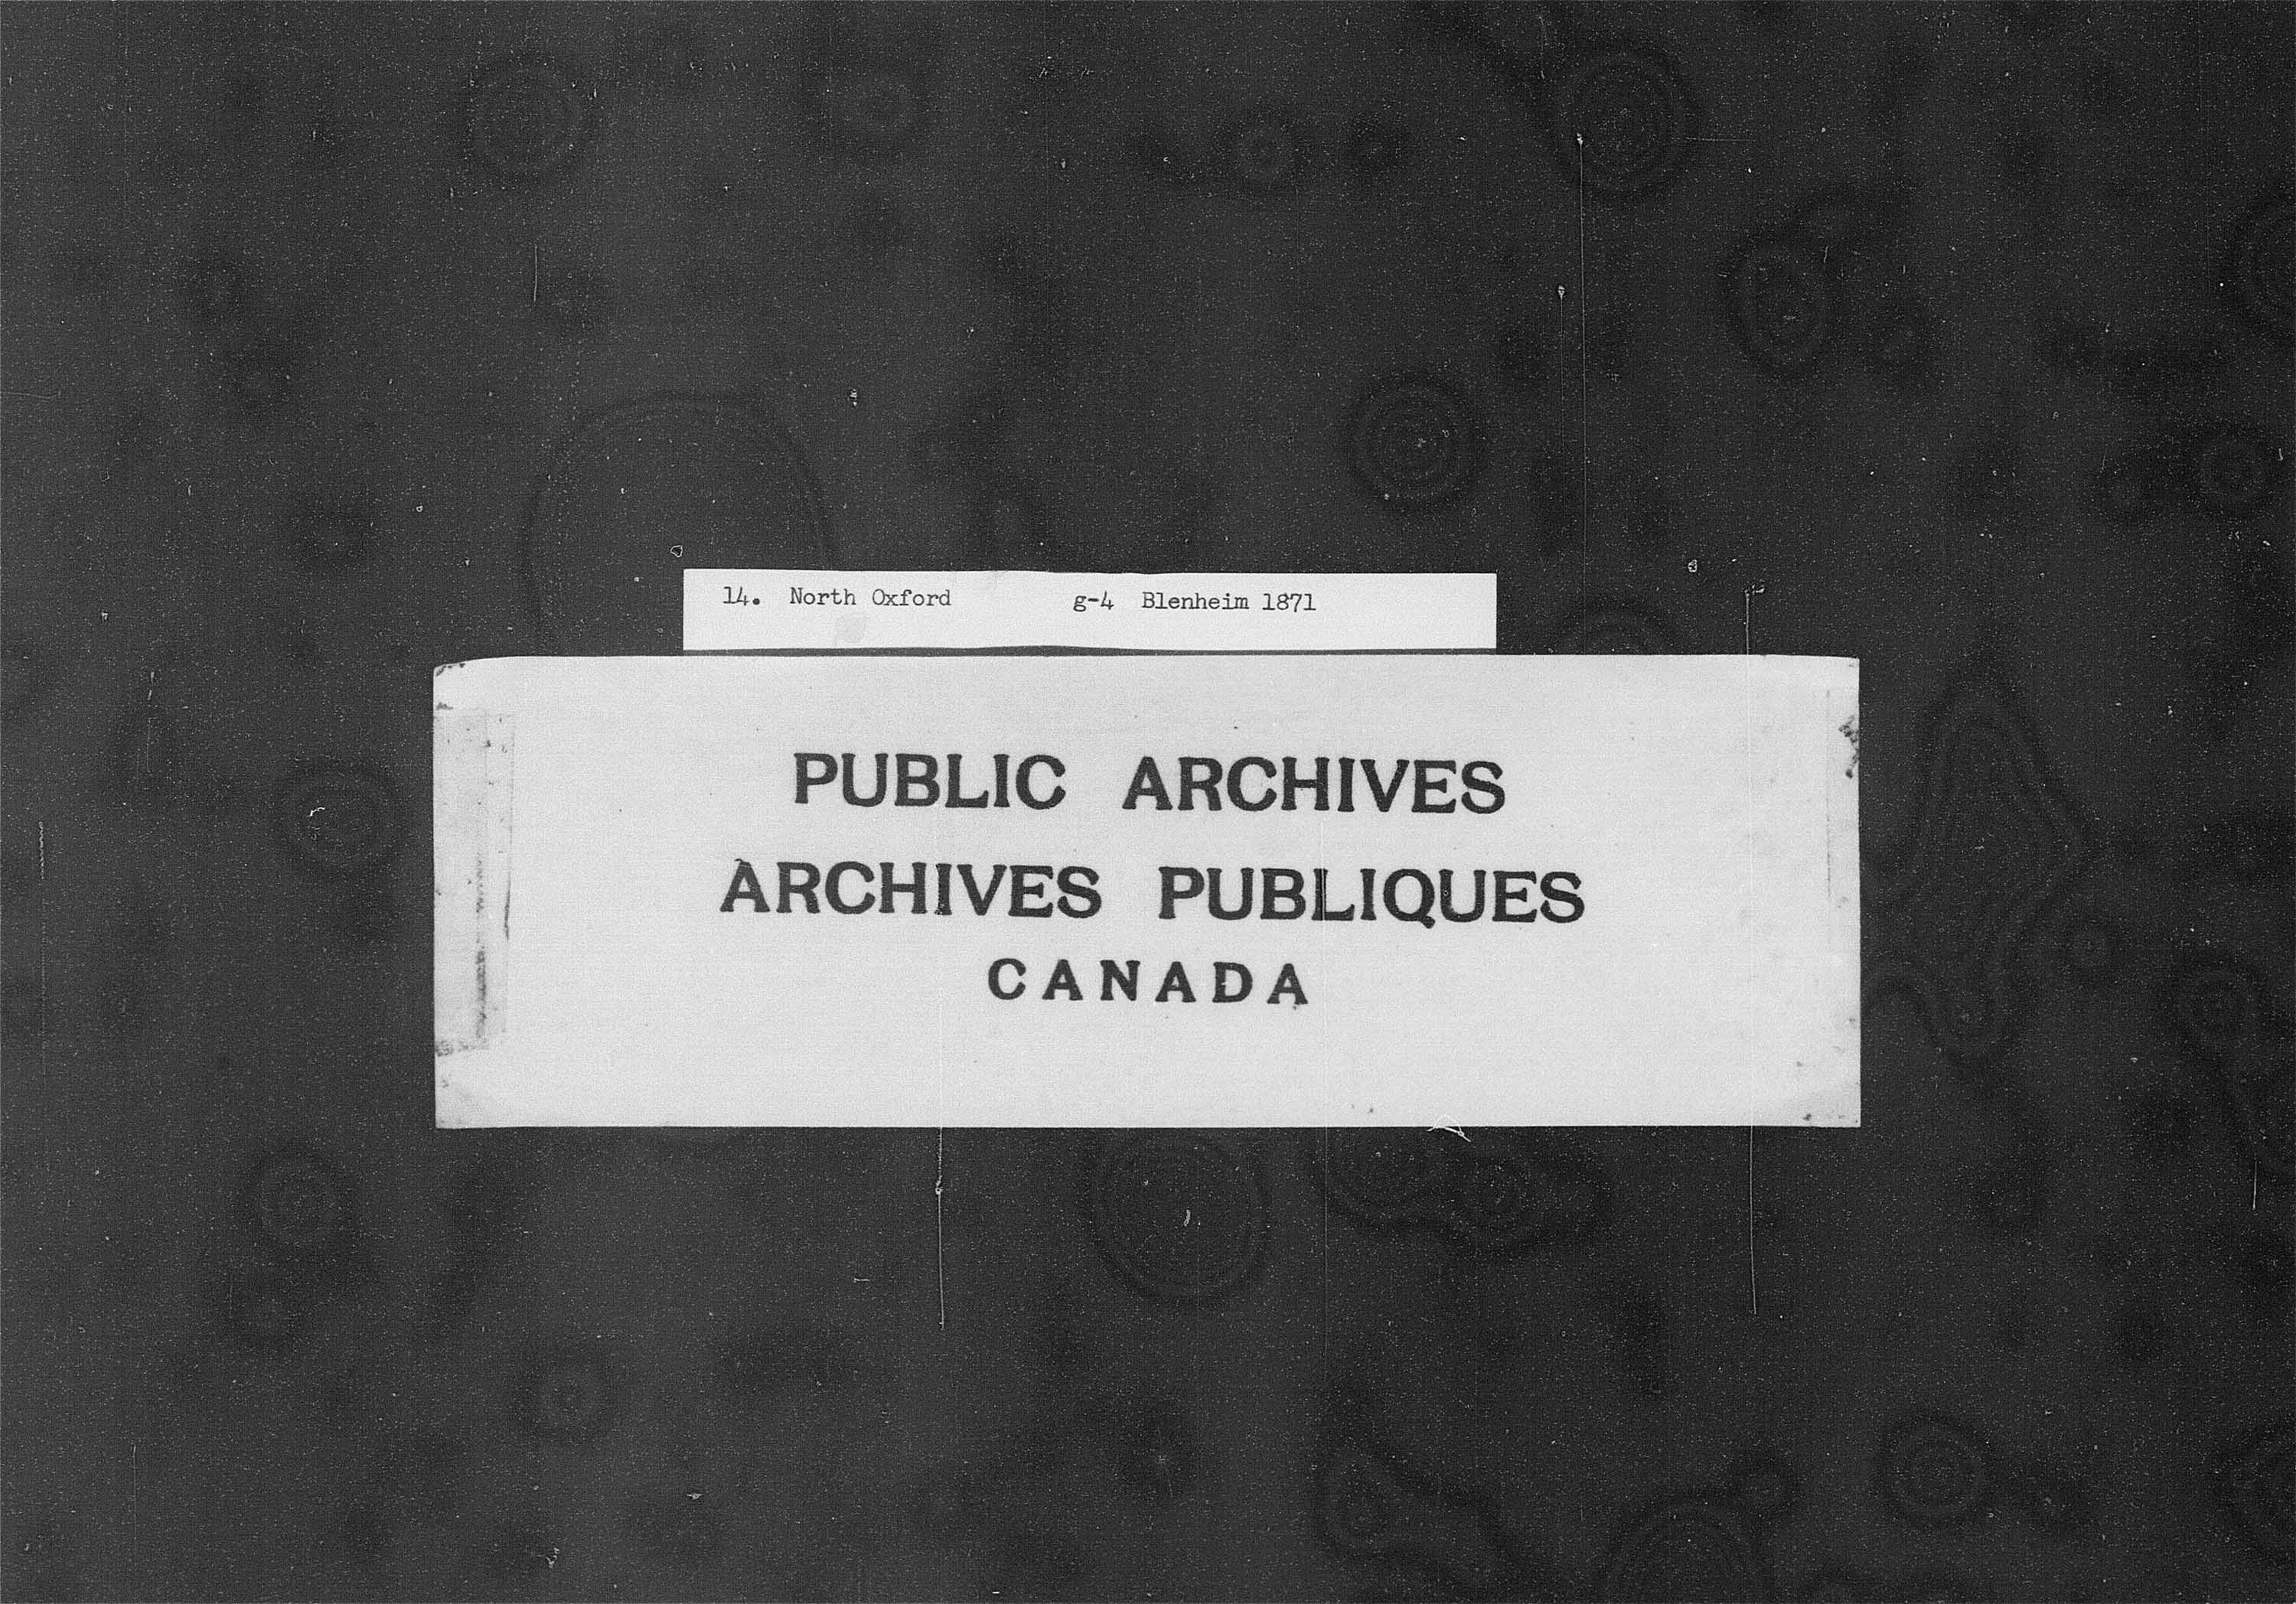 Title: Census of Canada, 1871 - Mikan Number: 142105 - Microform: c-9913